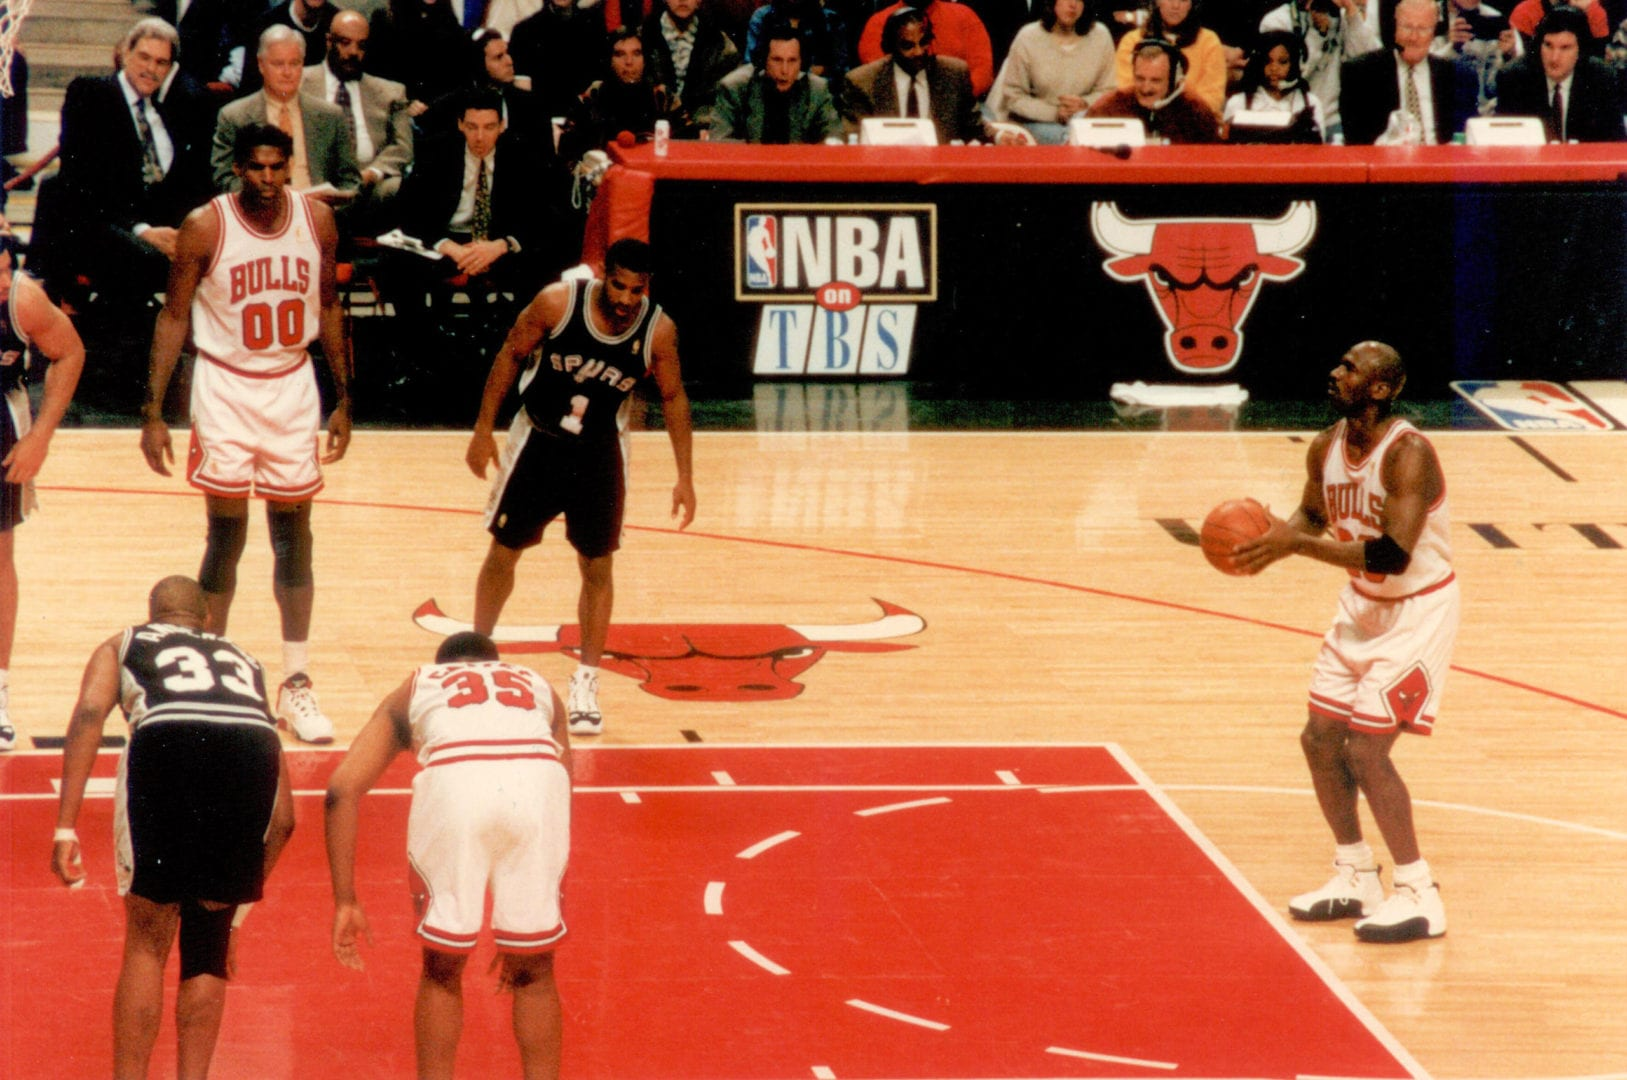 MJ giving his free throw